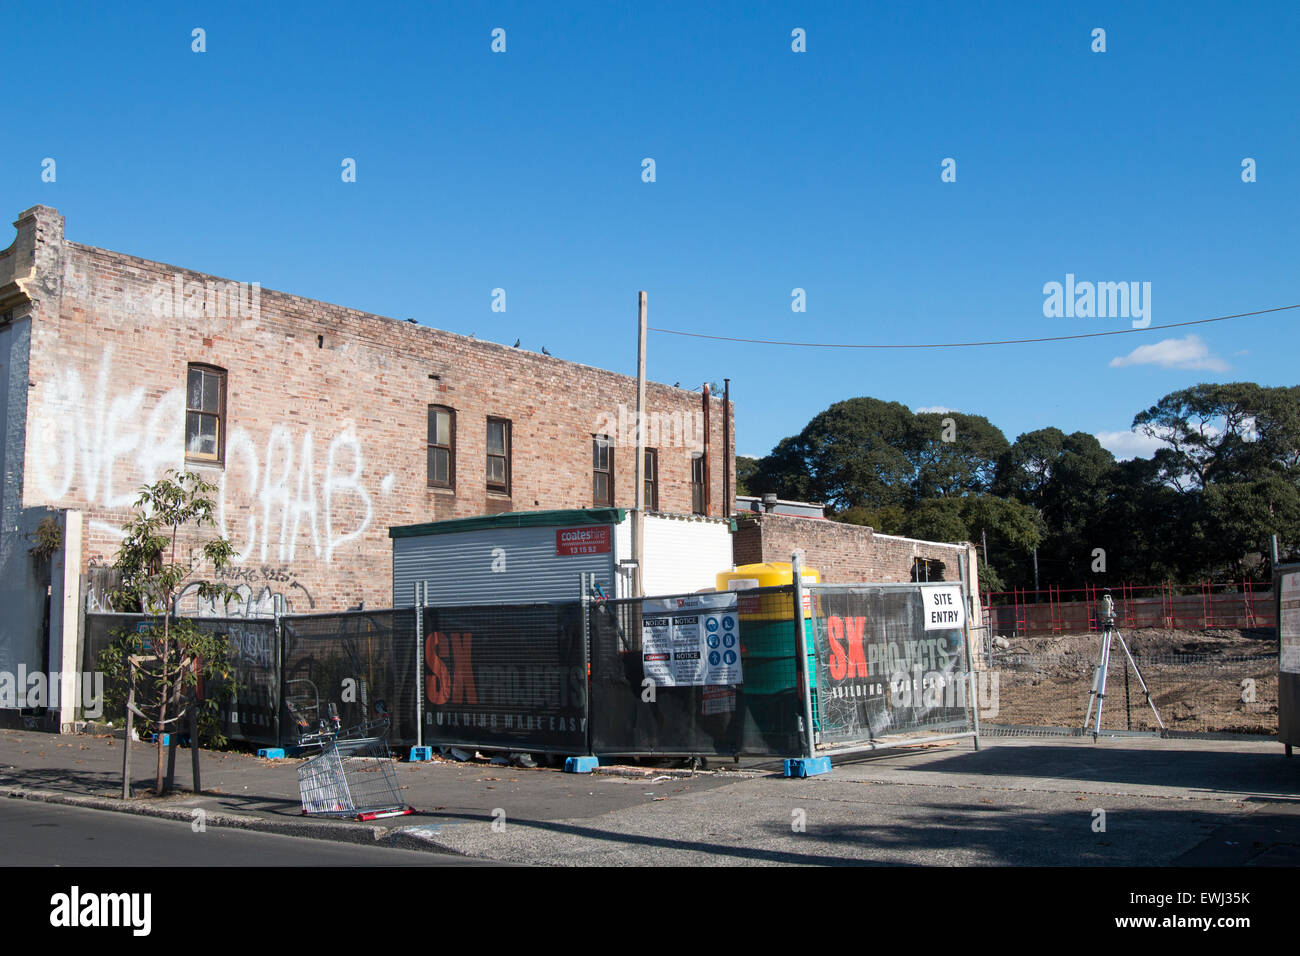 land on botany road Sydney being developed into residential units and apartments,Sydney,Australia - Stock Image